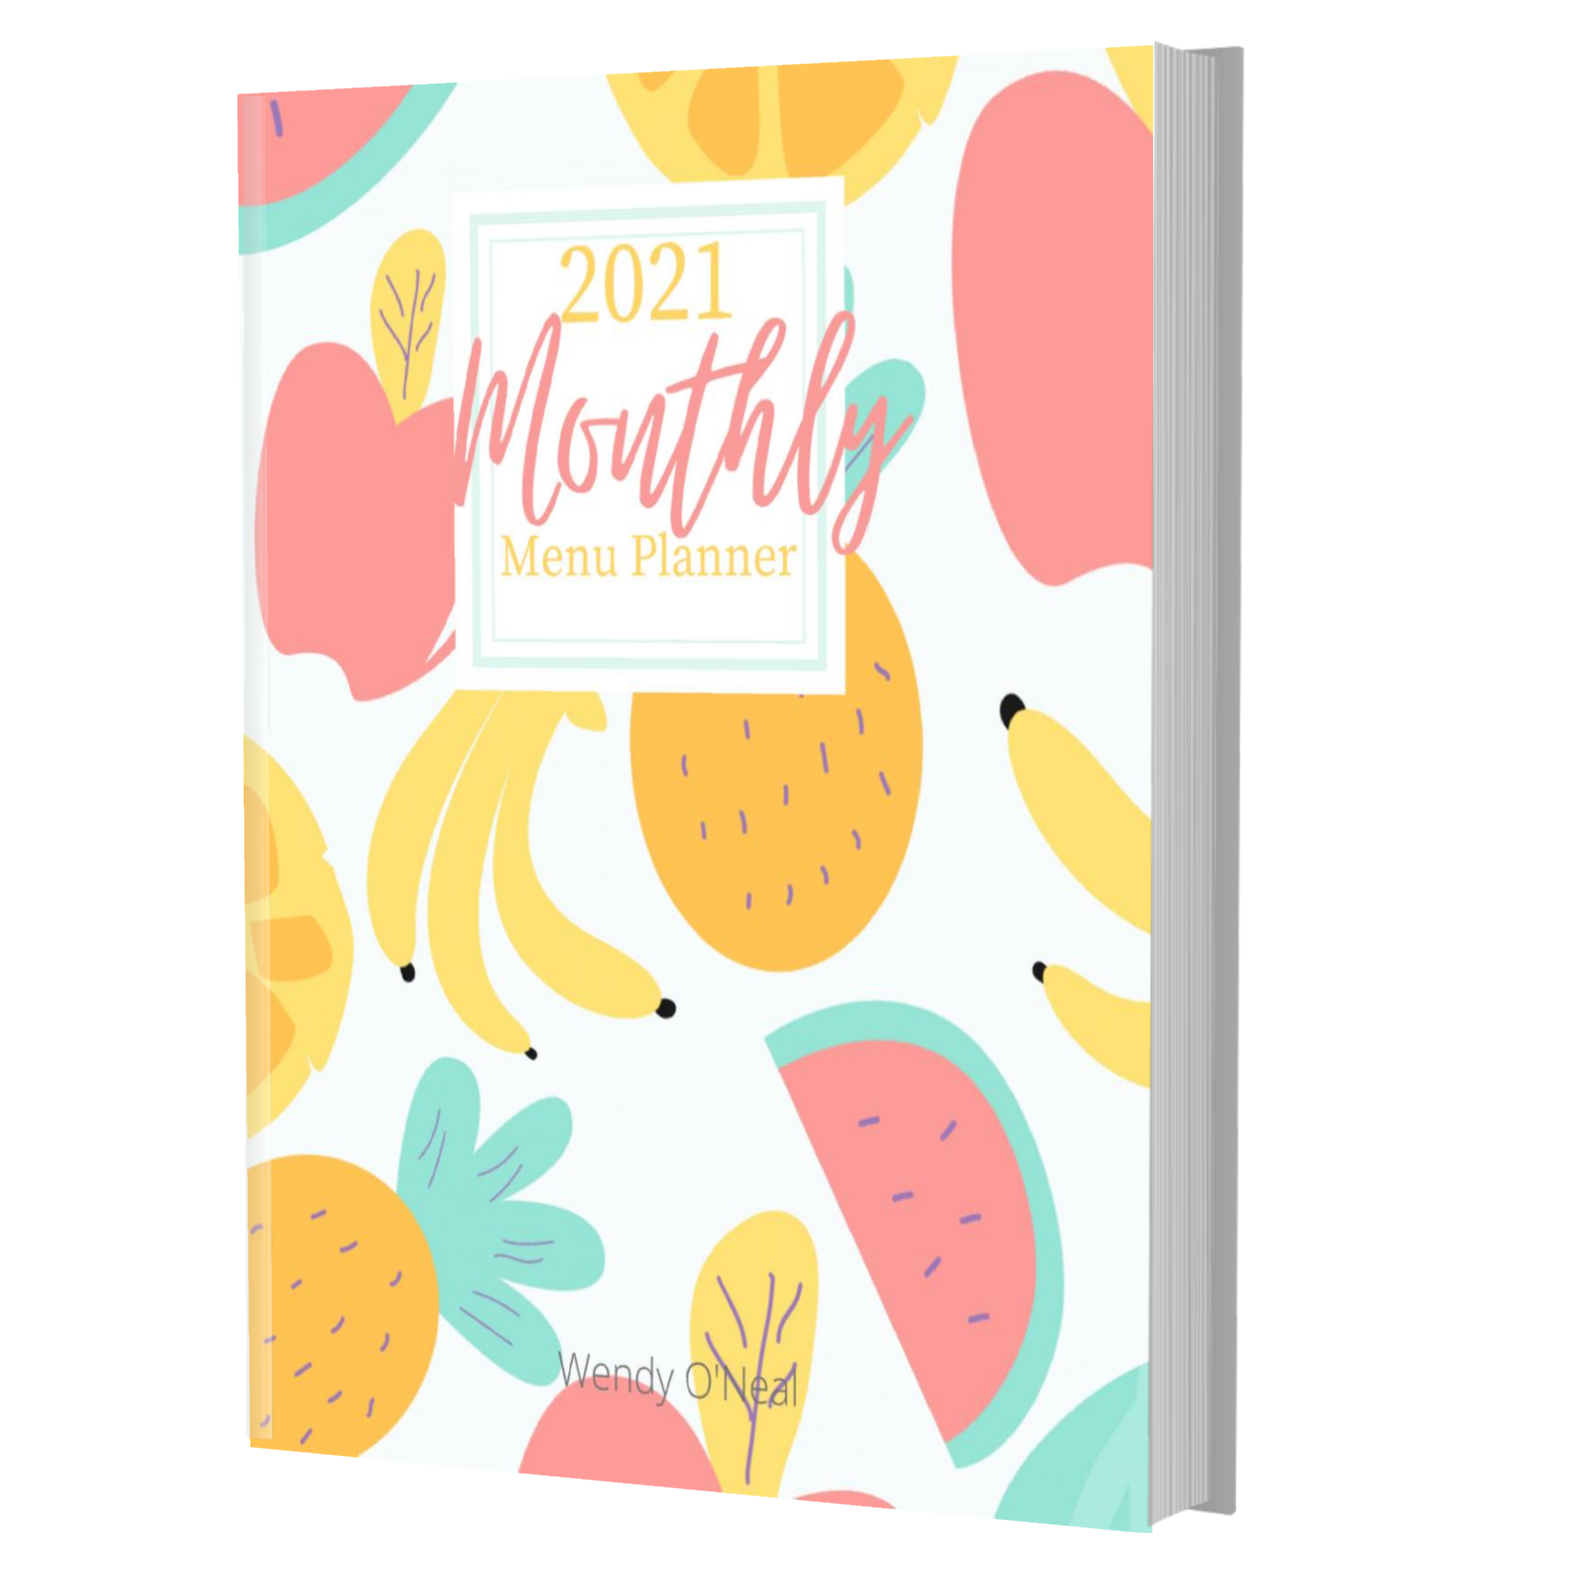 Don't let busy schedules keep you from planning healthy meals for your family.  Get a handle on menu planning, shopping, and recipe list with this colorful 8 1/2 x 11 Menu Planner. Order your menu planning journal TODAY. via @slingmama